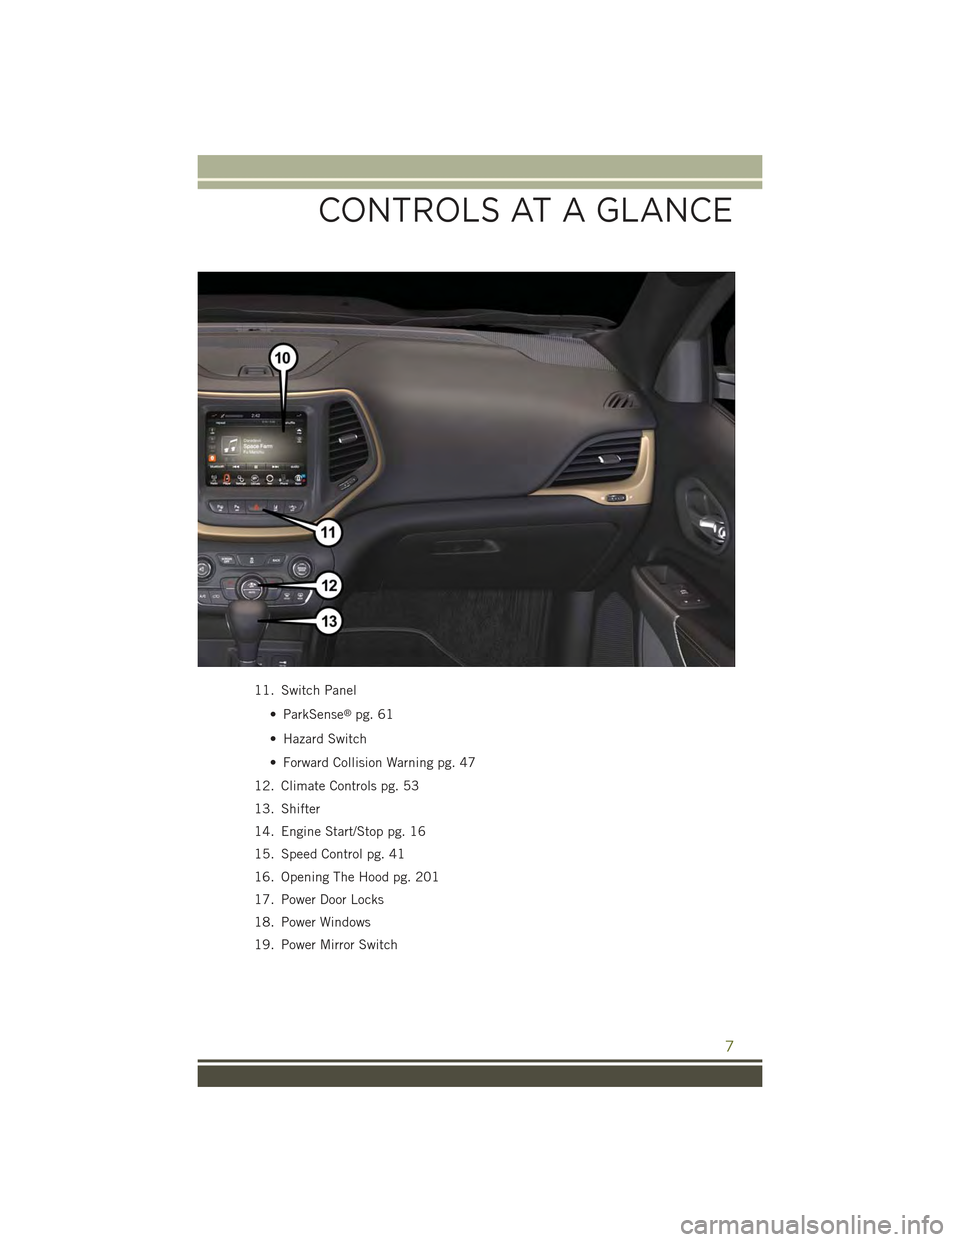 JEEP CHEROKEE 2015 KL / 5.G User Guide 11. Switch Panel • ParkSense®pg. 61 • Hazard Switch • Forward Collision Warning pg. 47 12. Climate Controls pg. 53 13. Shifter 14. Engine Start/Stop pg. 16 15. Speed Control pg. 41 16. Opening